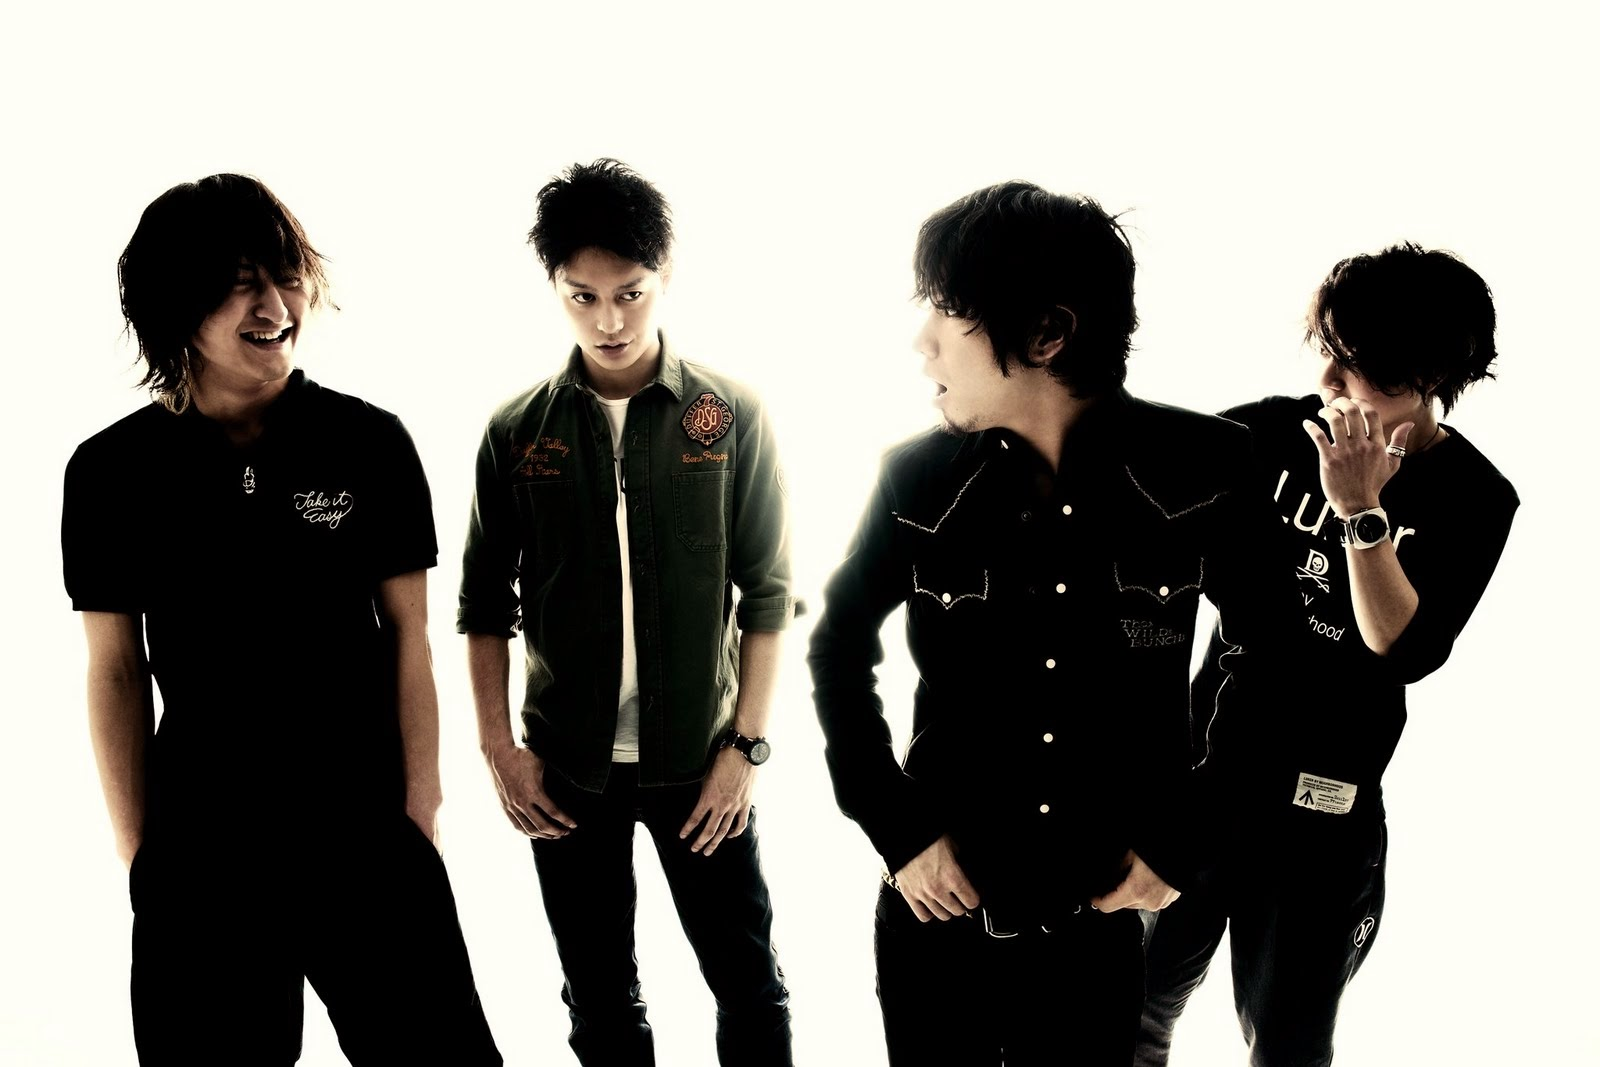 ONE OK ROCK COMES TO ROCK THE ANAHEIM HOUSE OF BLUES FOR THE FIRST TIME THIS OCTOBER